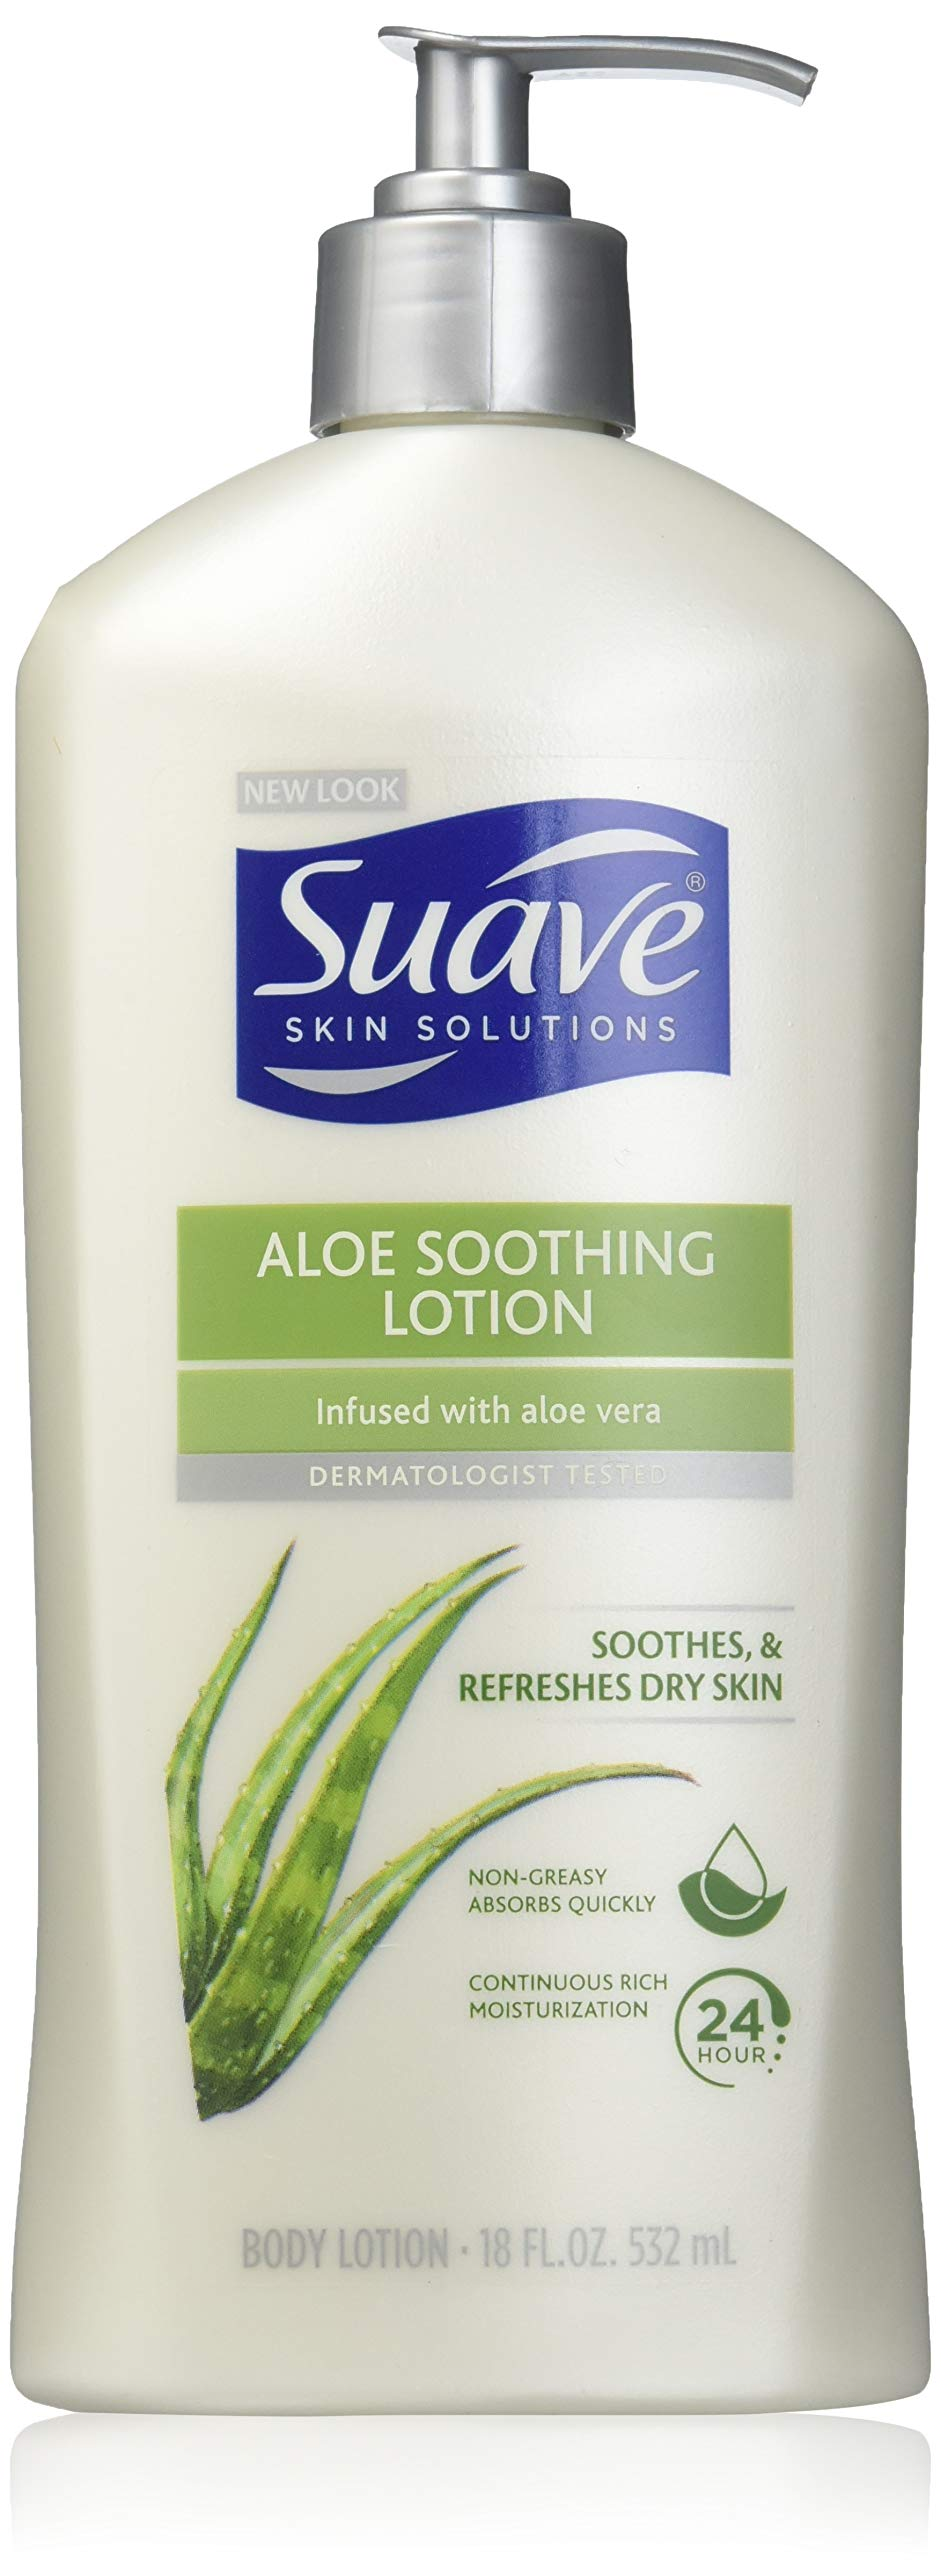 Suave Body Lotion - Soothing with Aloe - 18 oz - 2 pk by Suave